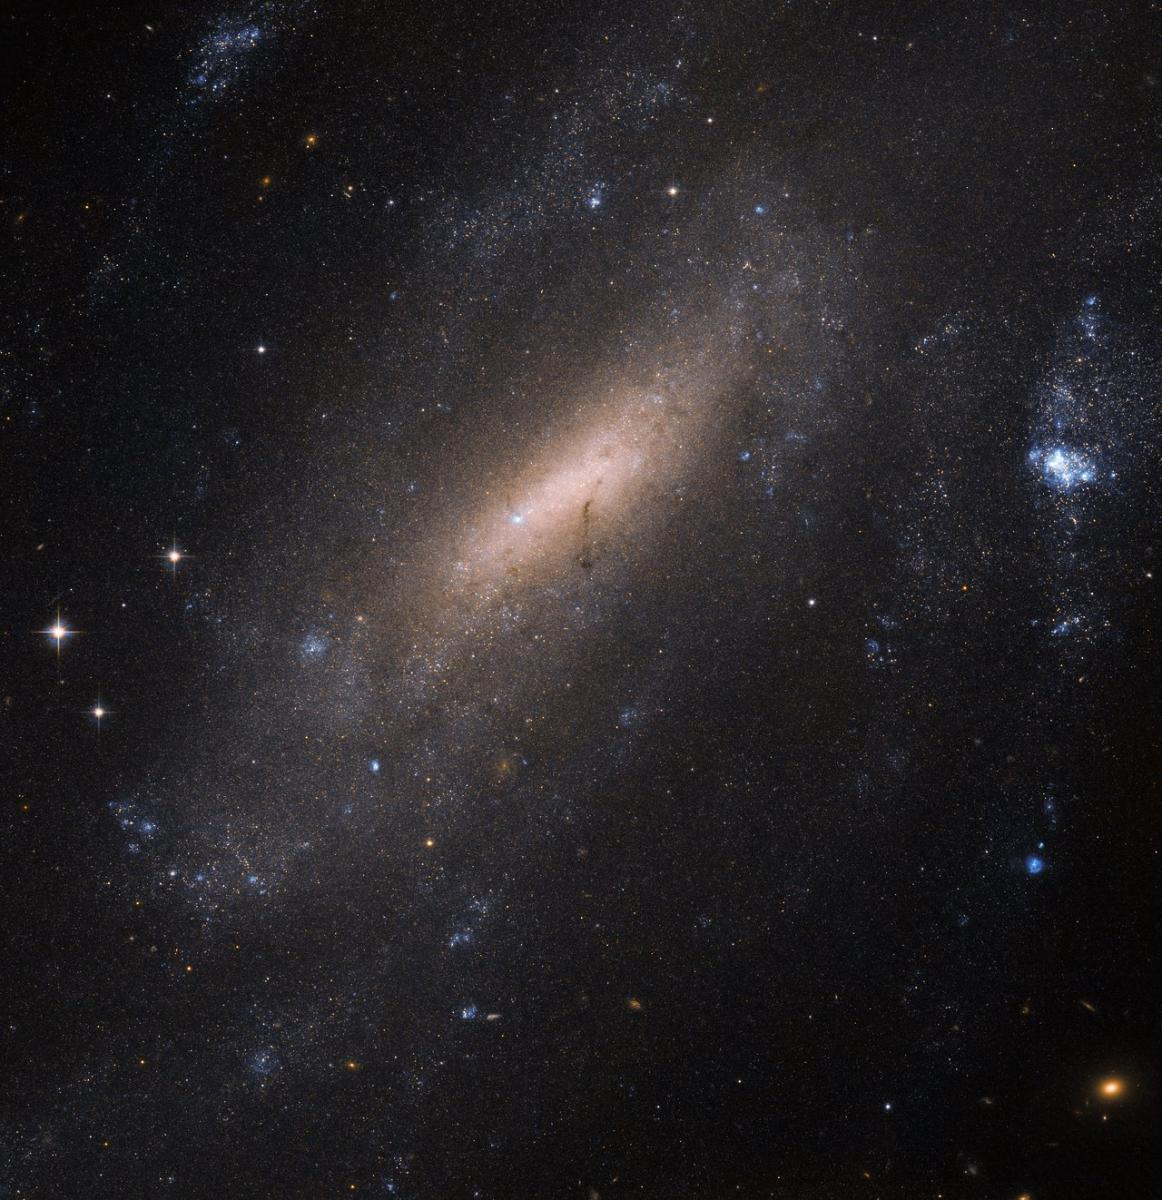 Hubble Space Telescope Photographs IC 5201 — A Distant Barred Spiral Galaxy